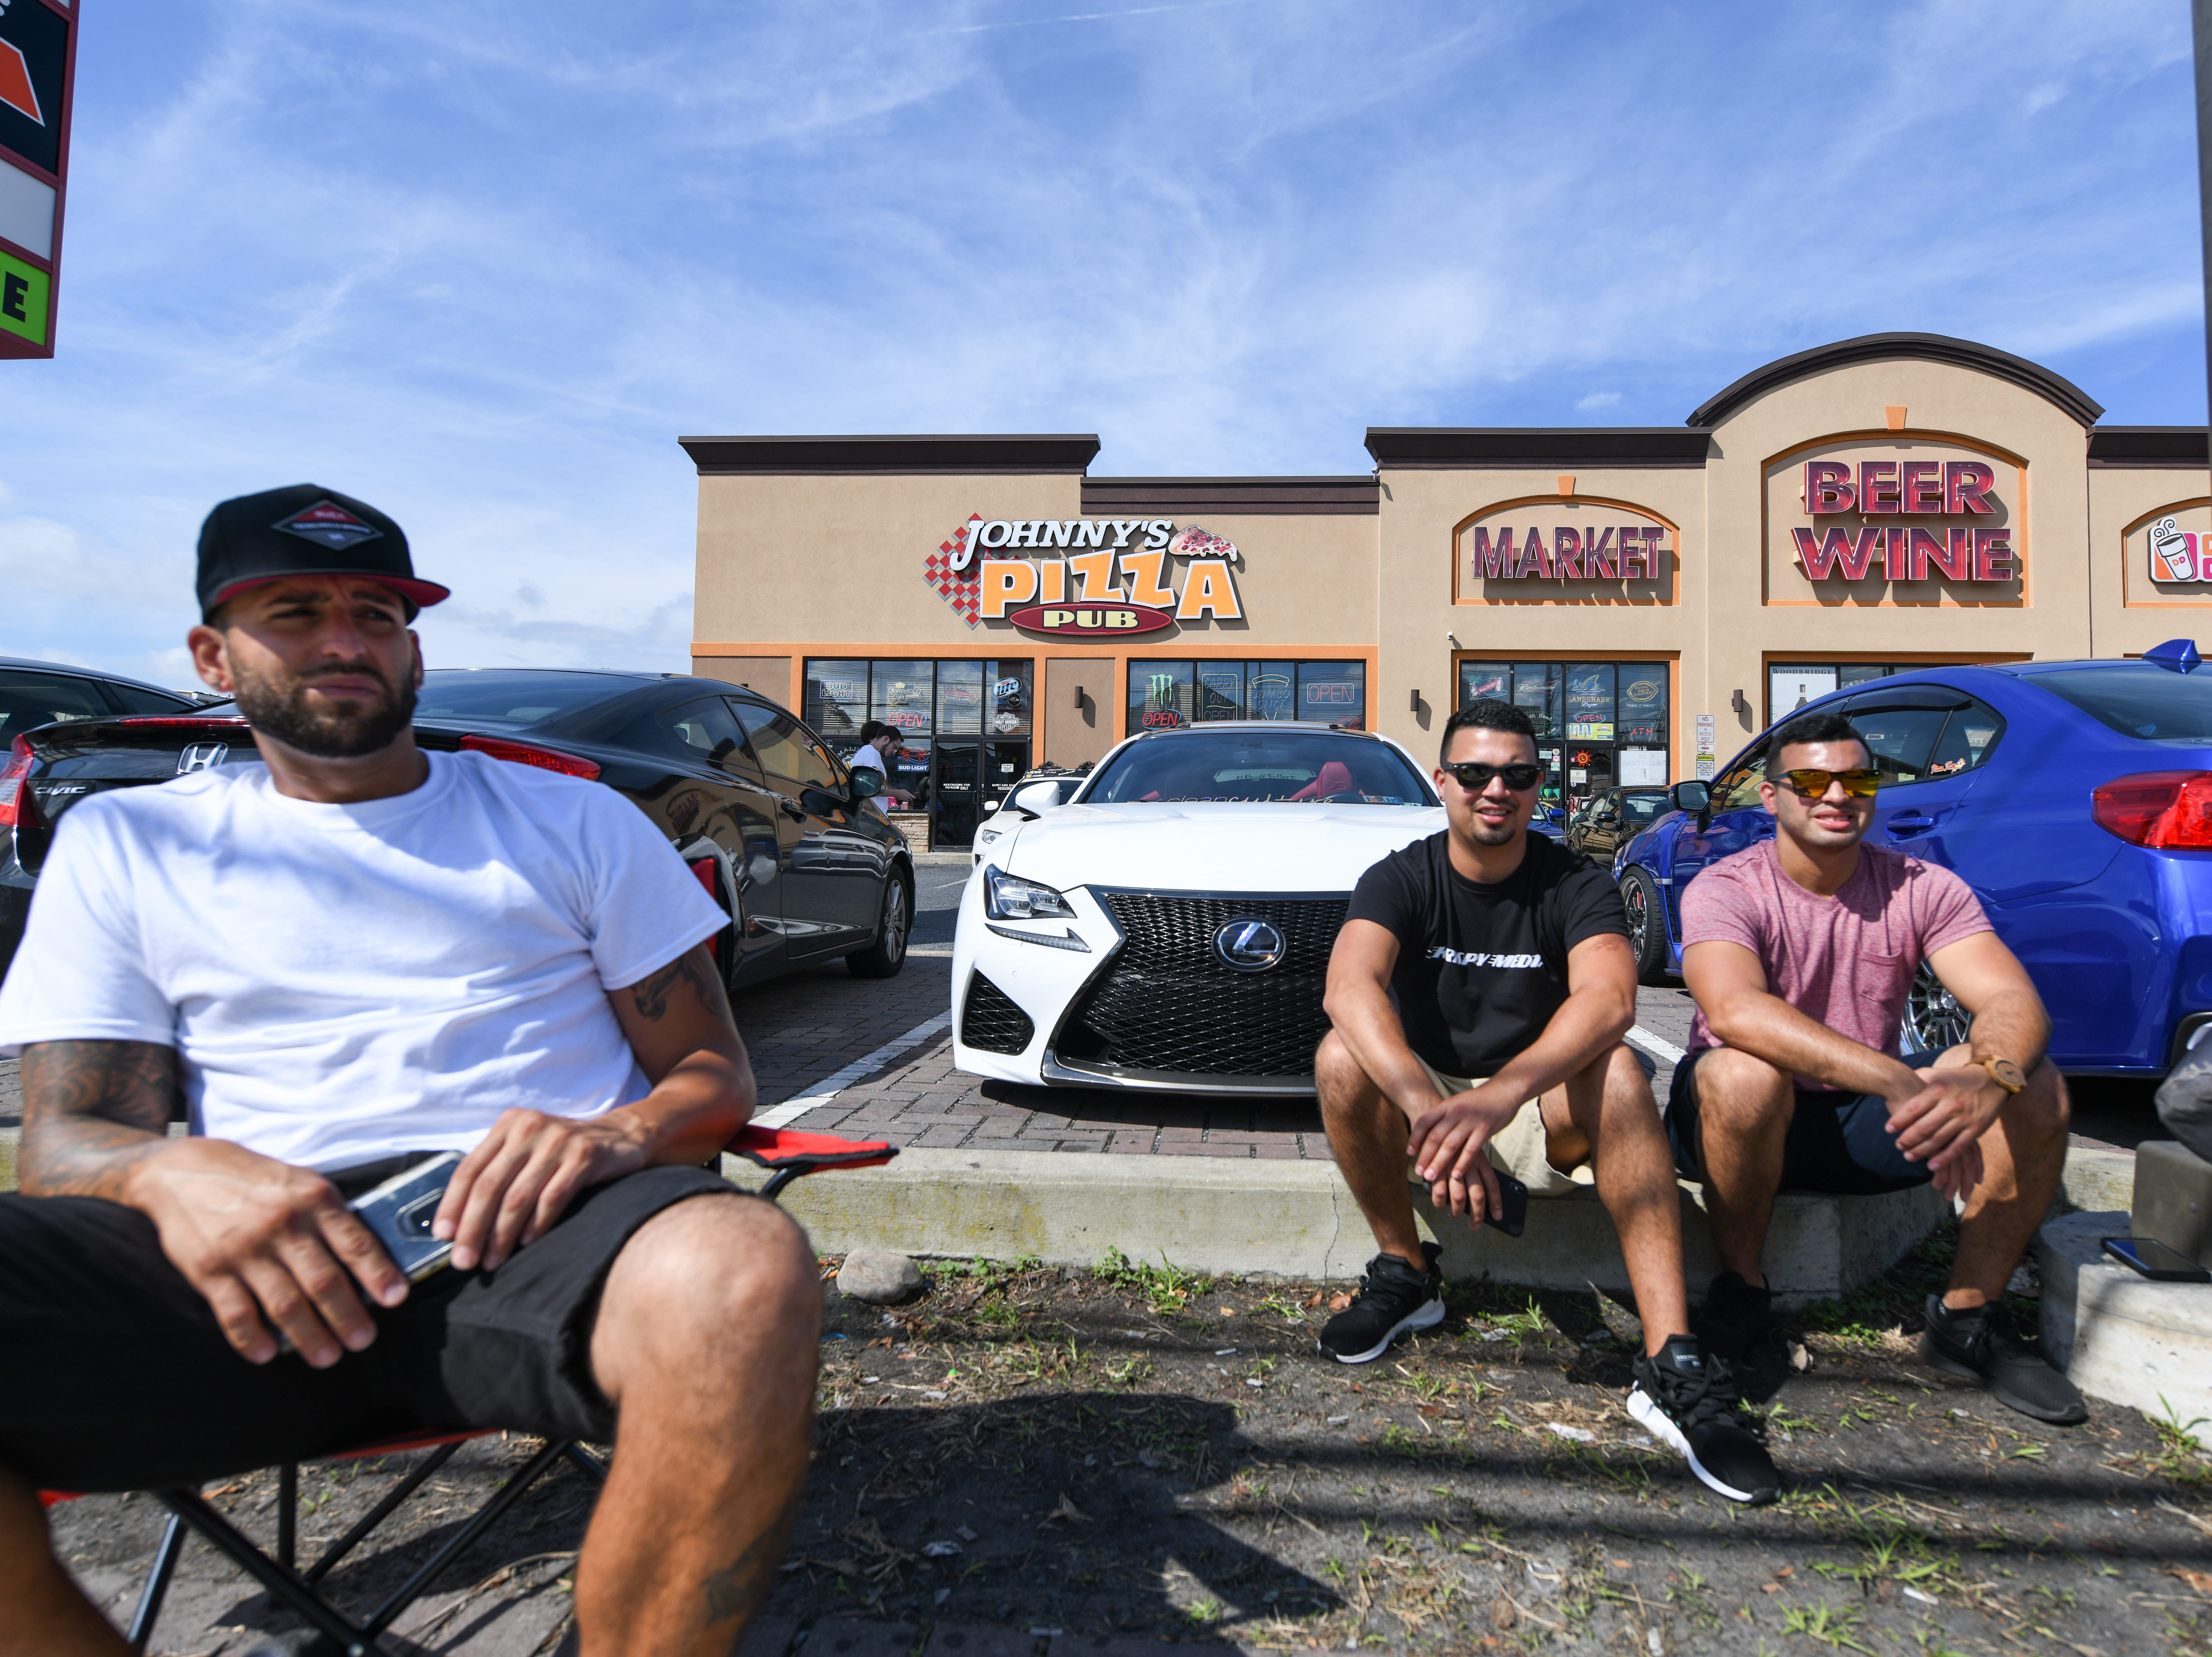 Car owners Robert (middle) and Helson (right) Rivera take a break from driving in front of Johnny's Pizza in Ocean City on Saturday, Sept 29, 2018. The group is in town from Pennsylvania for the unofficial H2Oi weekend, despite the fact that the car show has moved to Atlantic City.